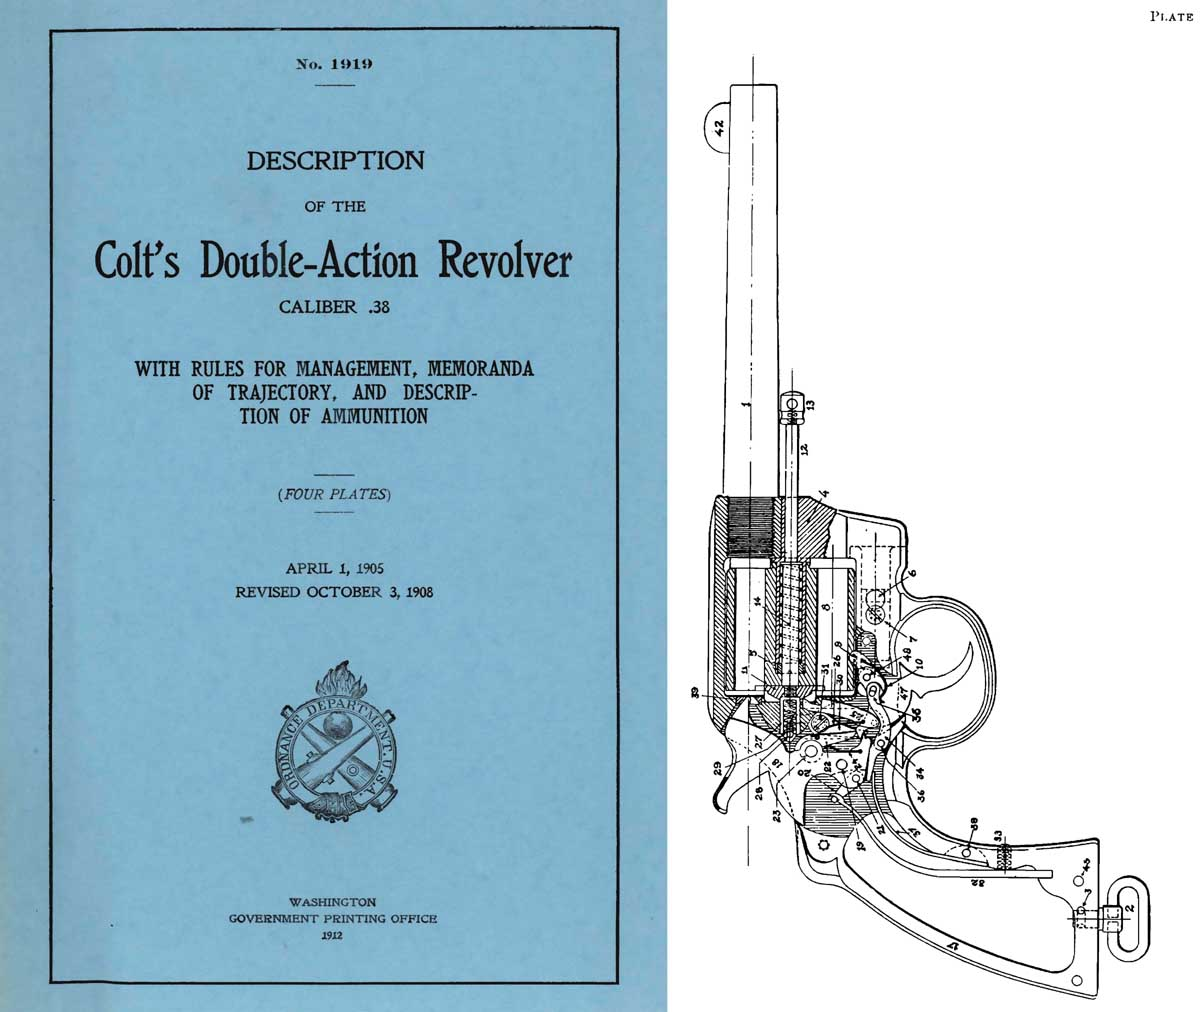 Colt 1912 Double-Action Revolver .38- GPO Description of- Manual